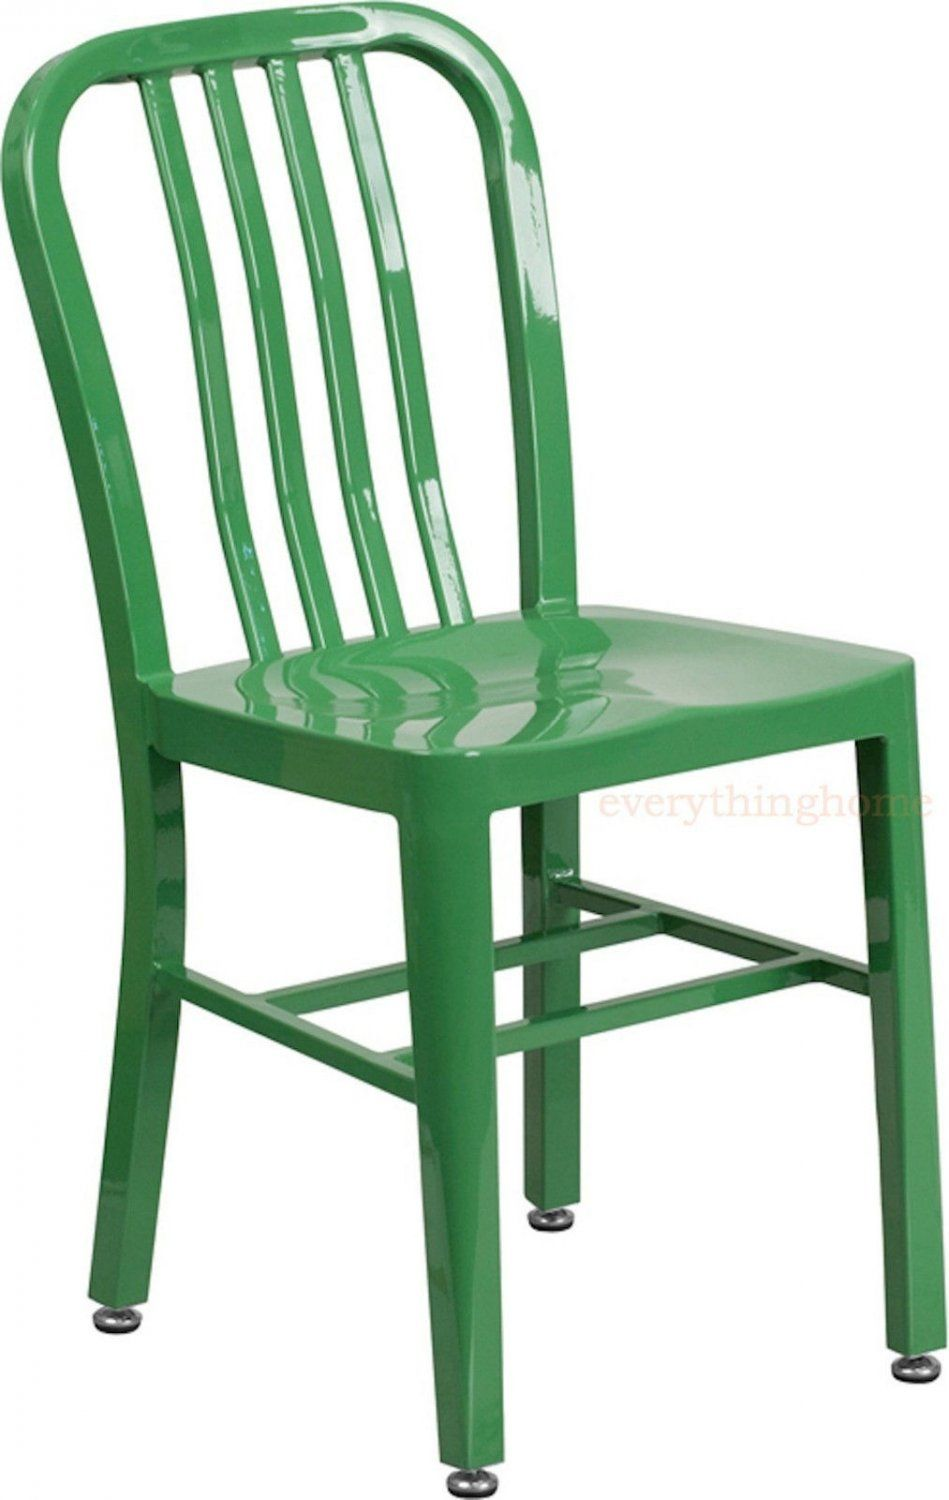 mid century green navy style dining chair cafe patio restaurant in rh pinterest com